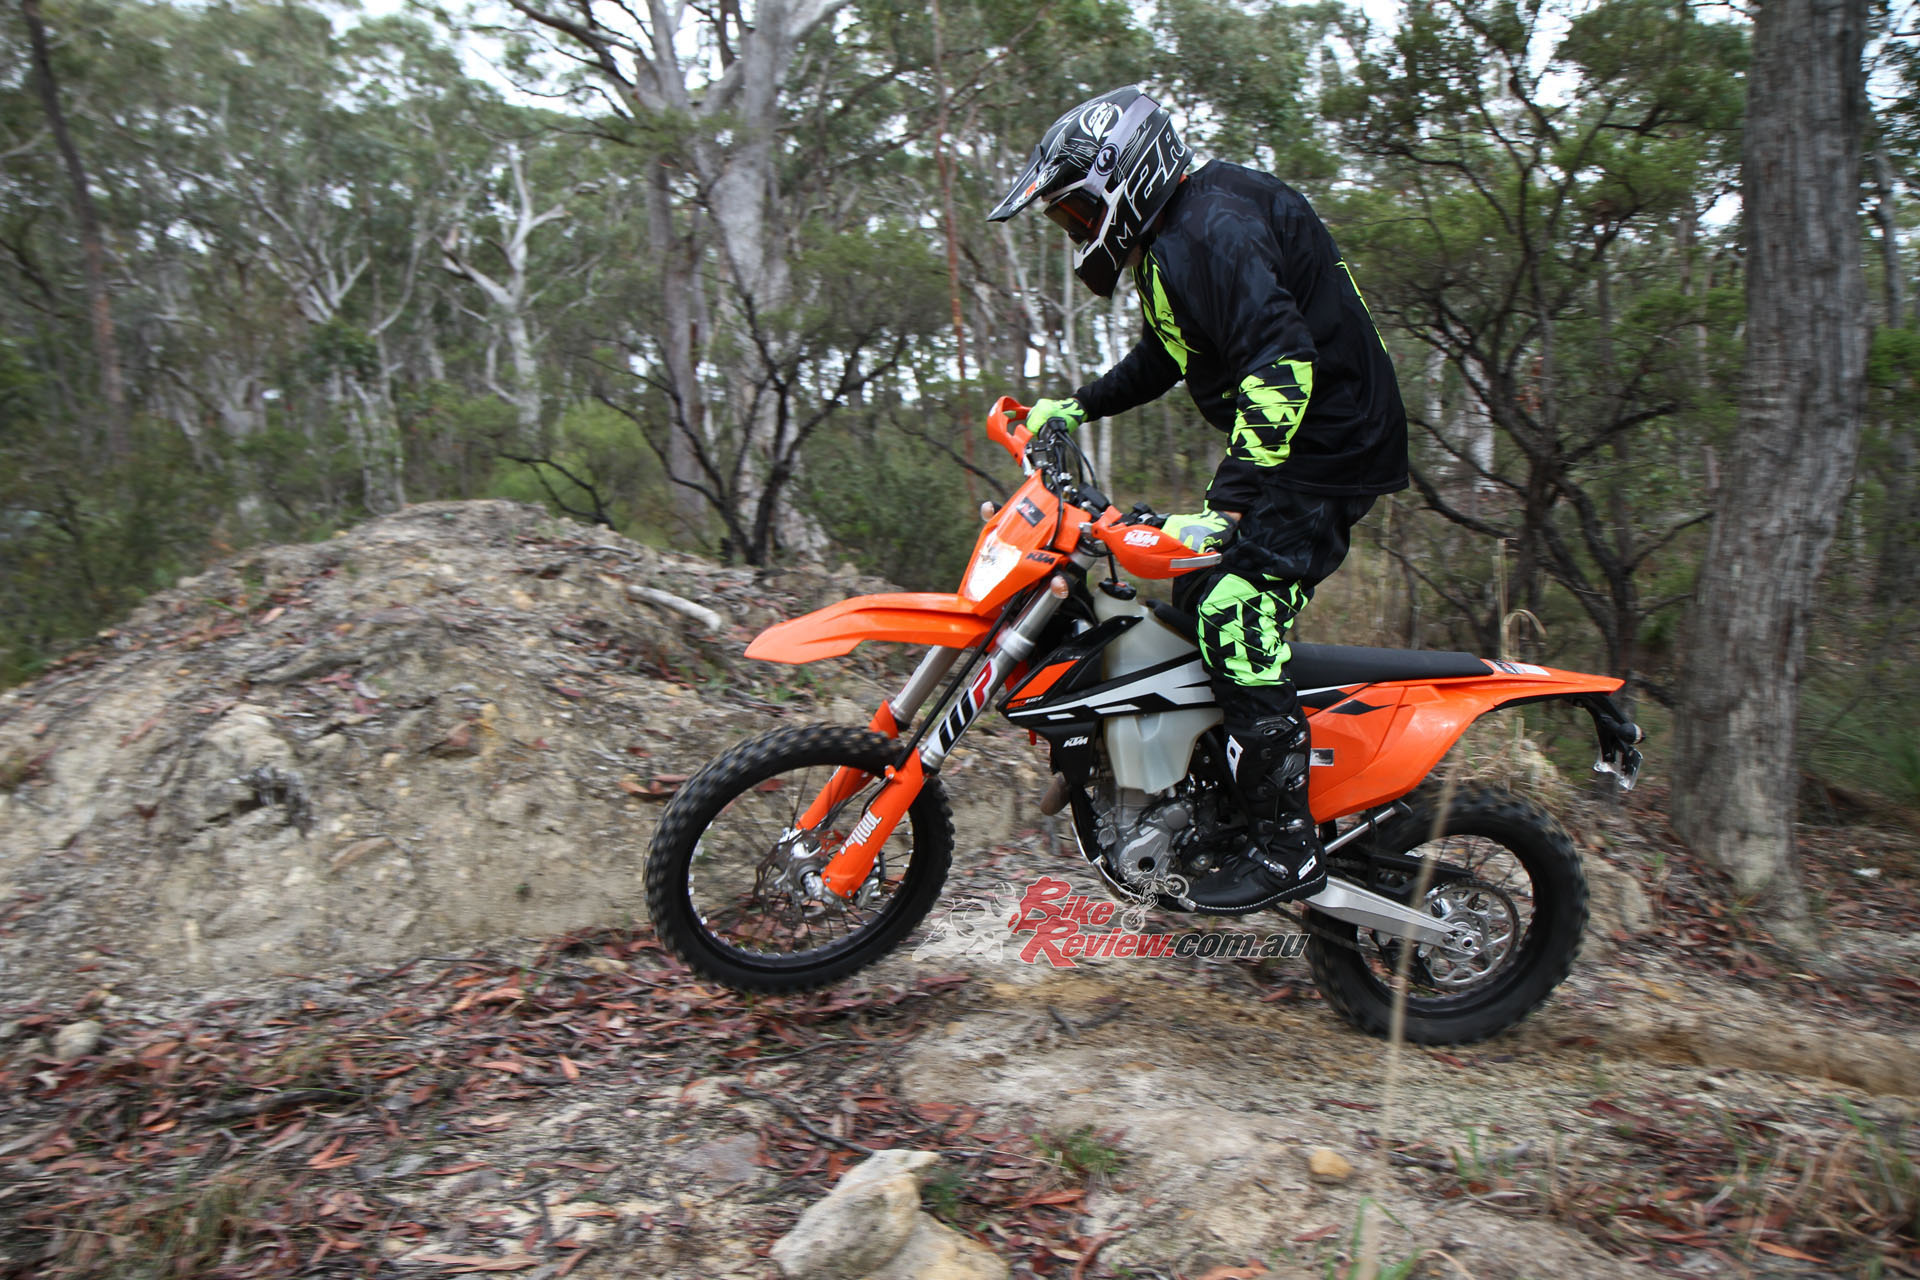 Quick Test: 2017 KTM 350 EXC-F Long Termer - Bike Review